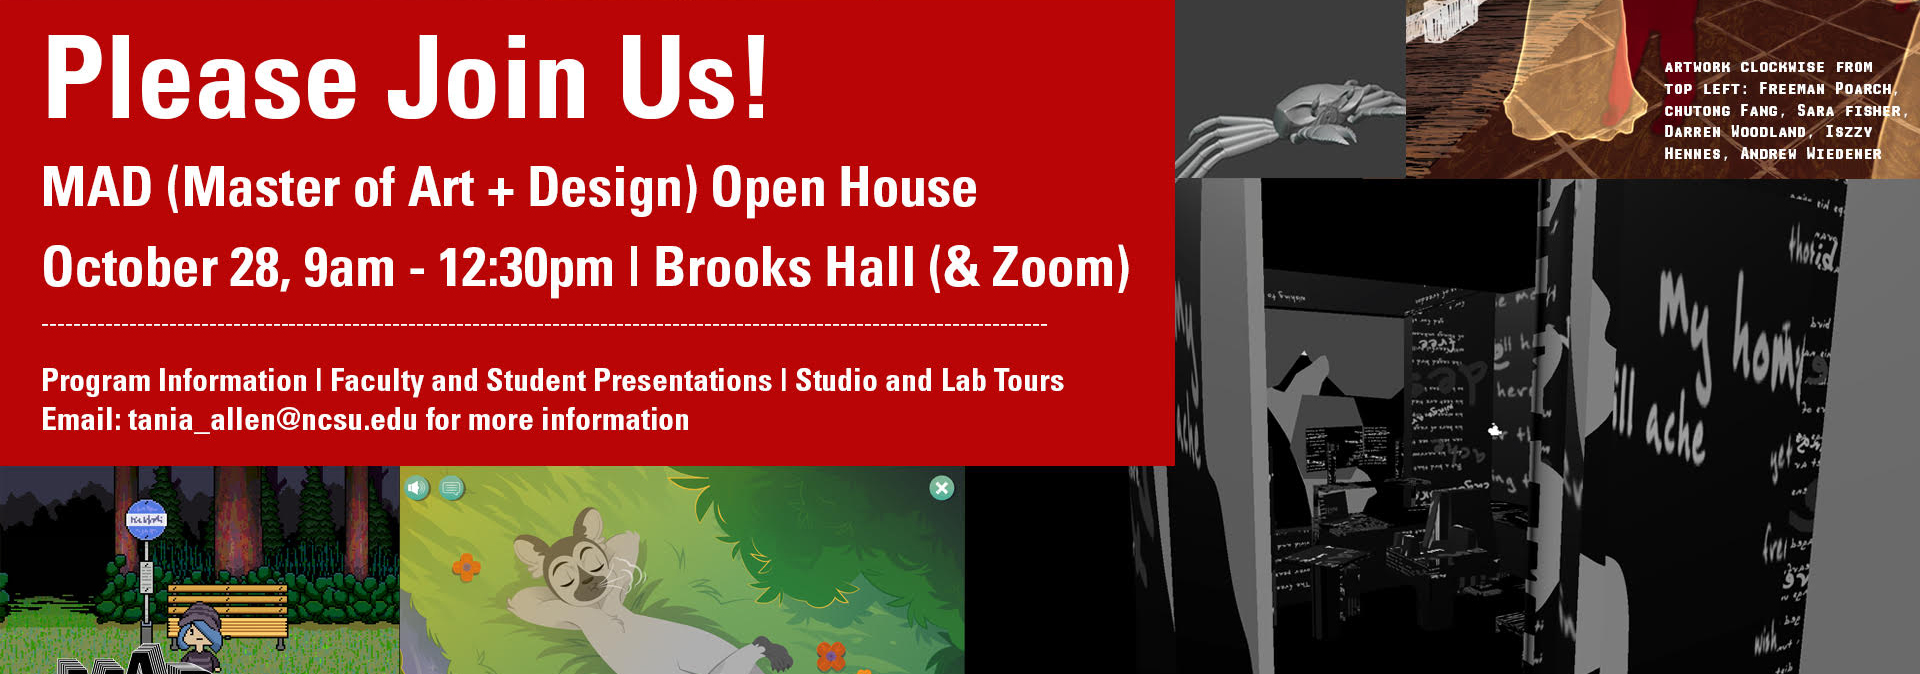 Please join us for an open house for the Master of Art + Design Program on Thursday, October 28 from 9 am - 12:30 pm in Brooks 322 (Belk Rotunda) as well as online. Learn more about the great work students and faculty are doing in this program!